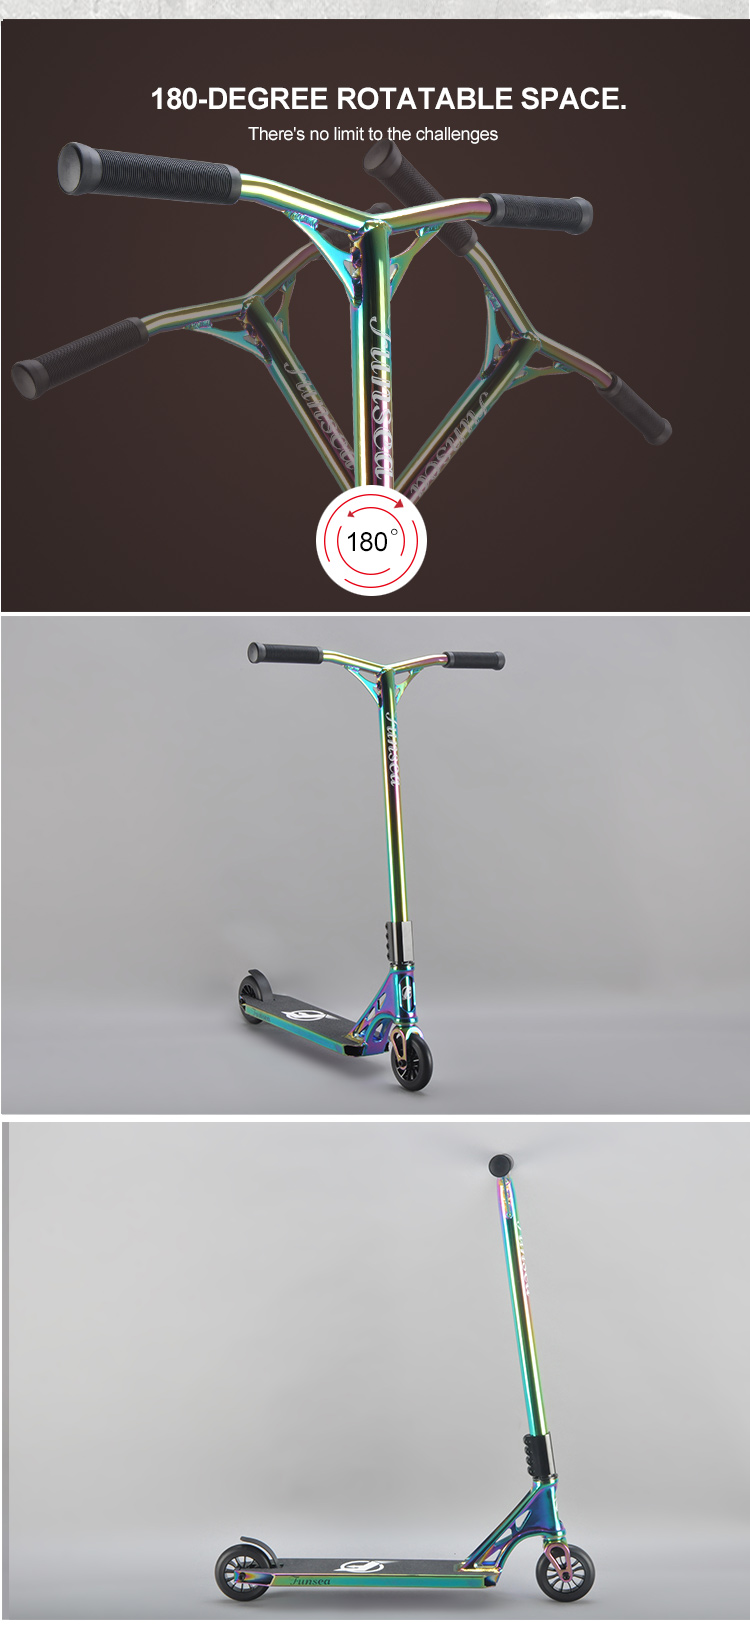 Fashion new model OEM ODM price wholesale kick foot scooters freestyle street scooters for kid child adult teenager man woman